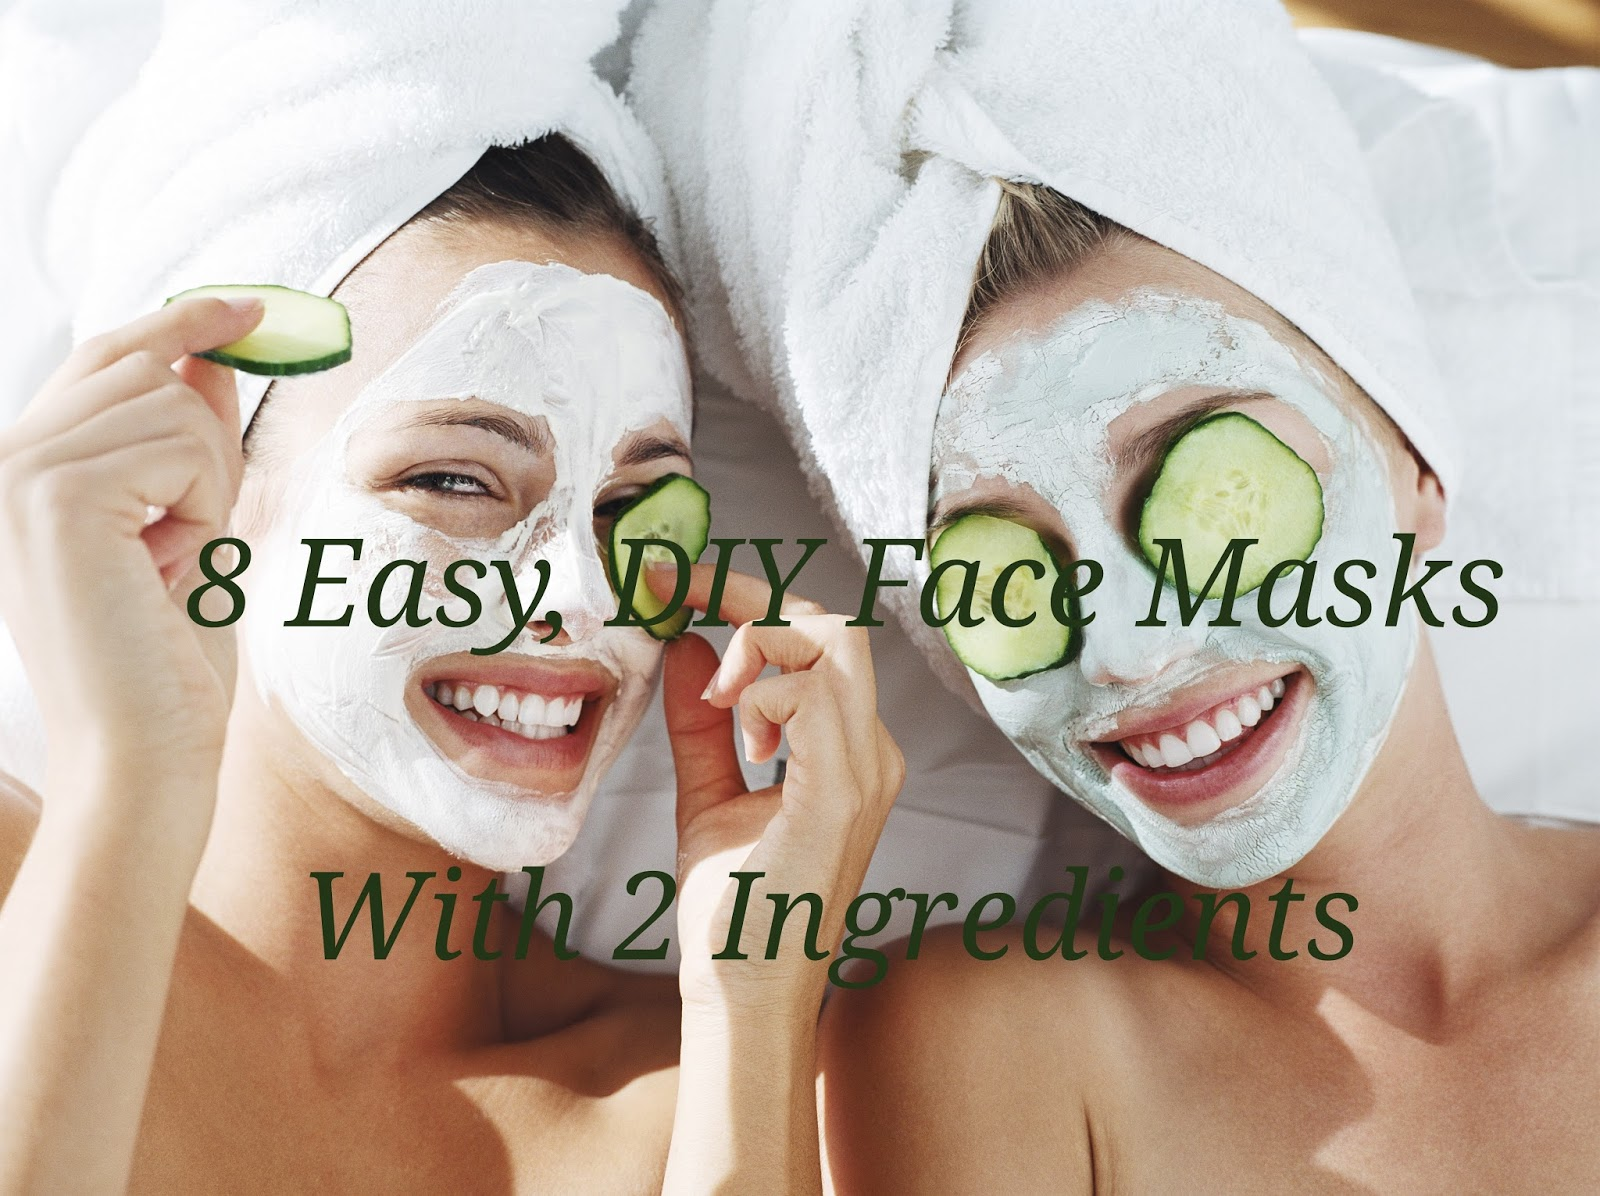 Just Girly Thangs 8 Easy Diy Face Masks With 2 Ingredients